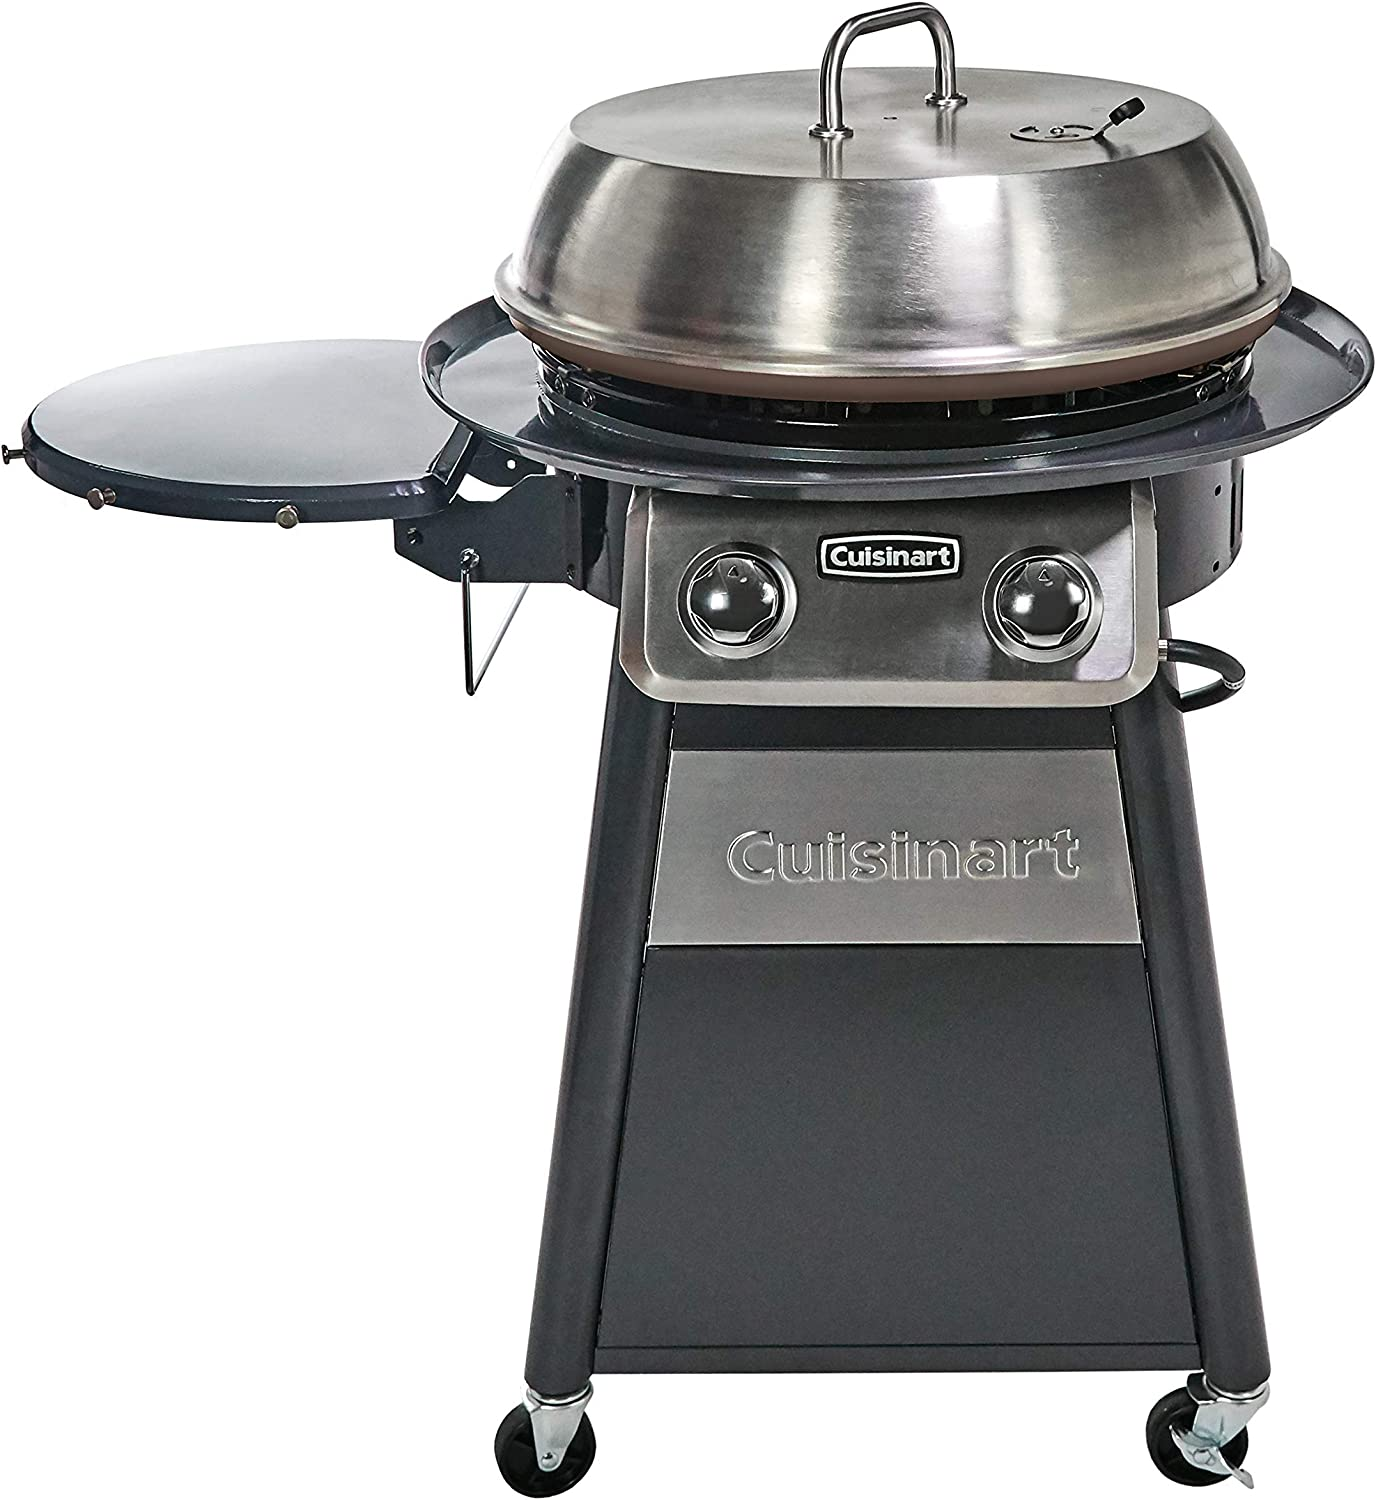 Cuisinart CGG-888 Grill Stainless Steel Lid 22-Inch Round Outdoor Flat Top Gas Griddle Cooking Center, 360 (Renewed)